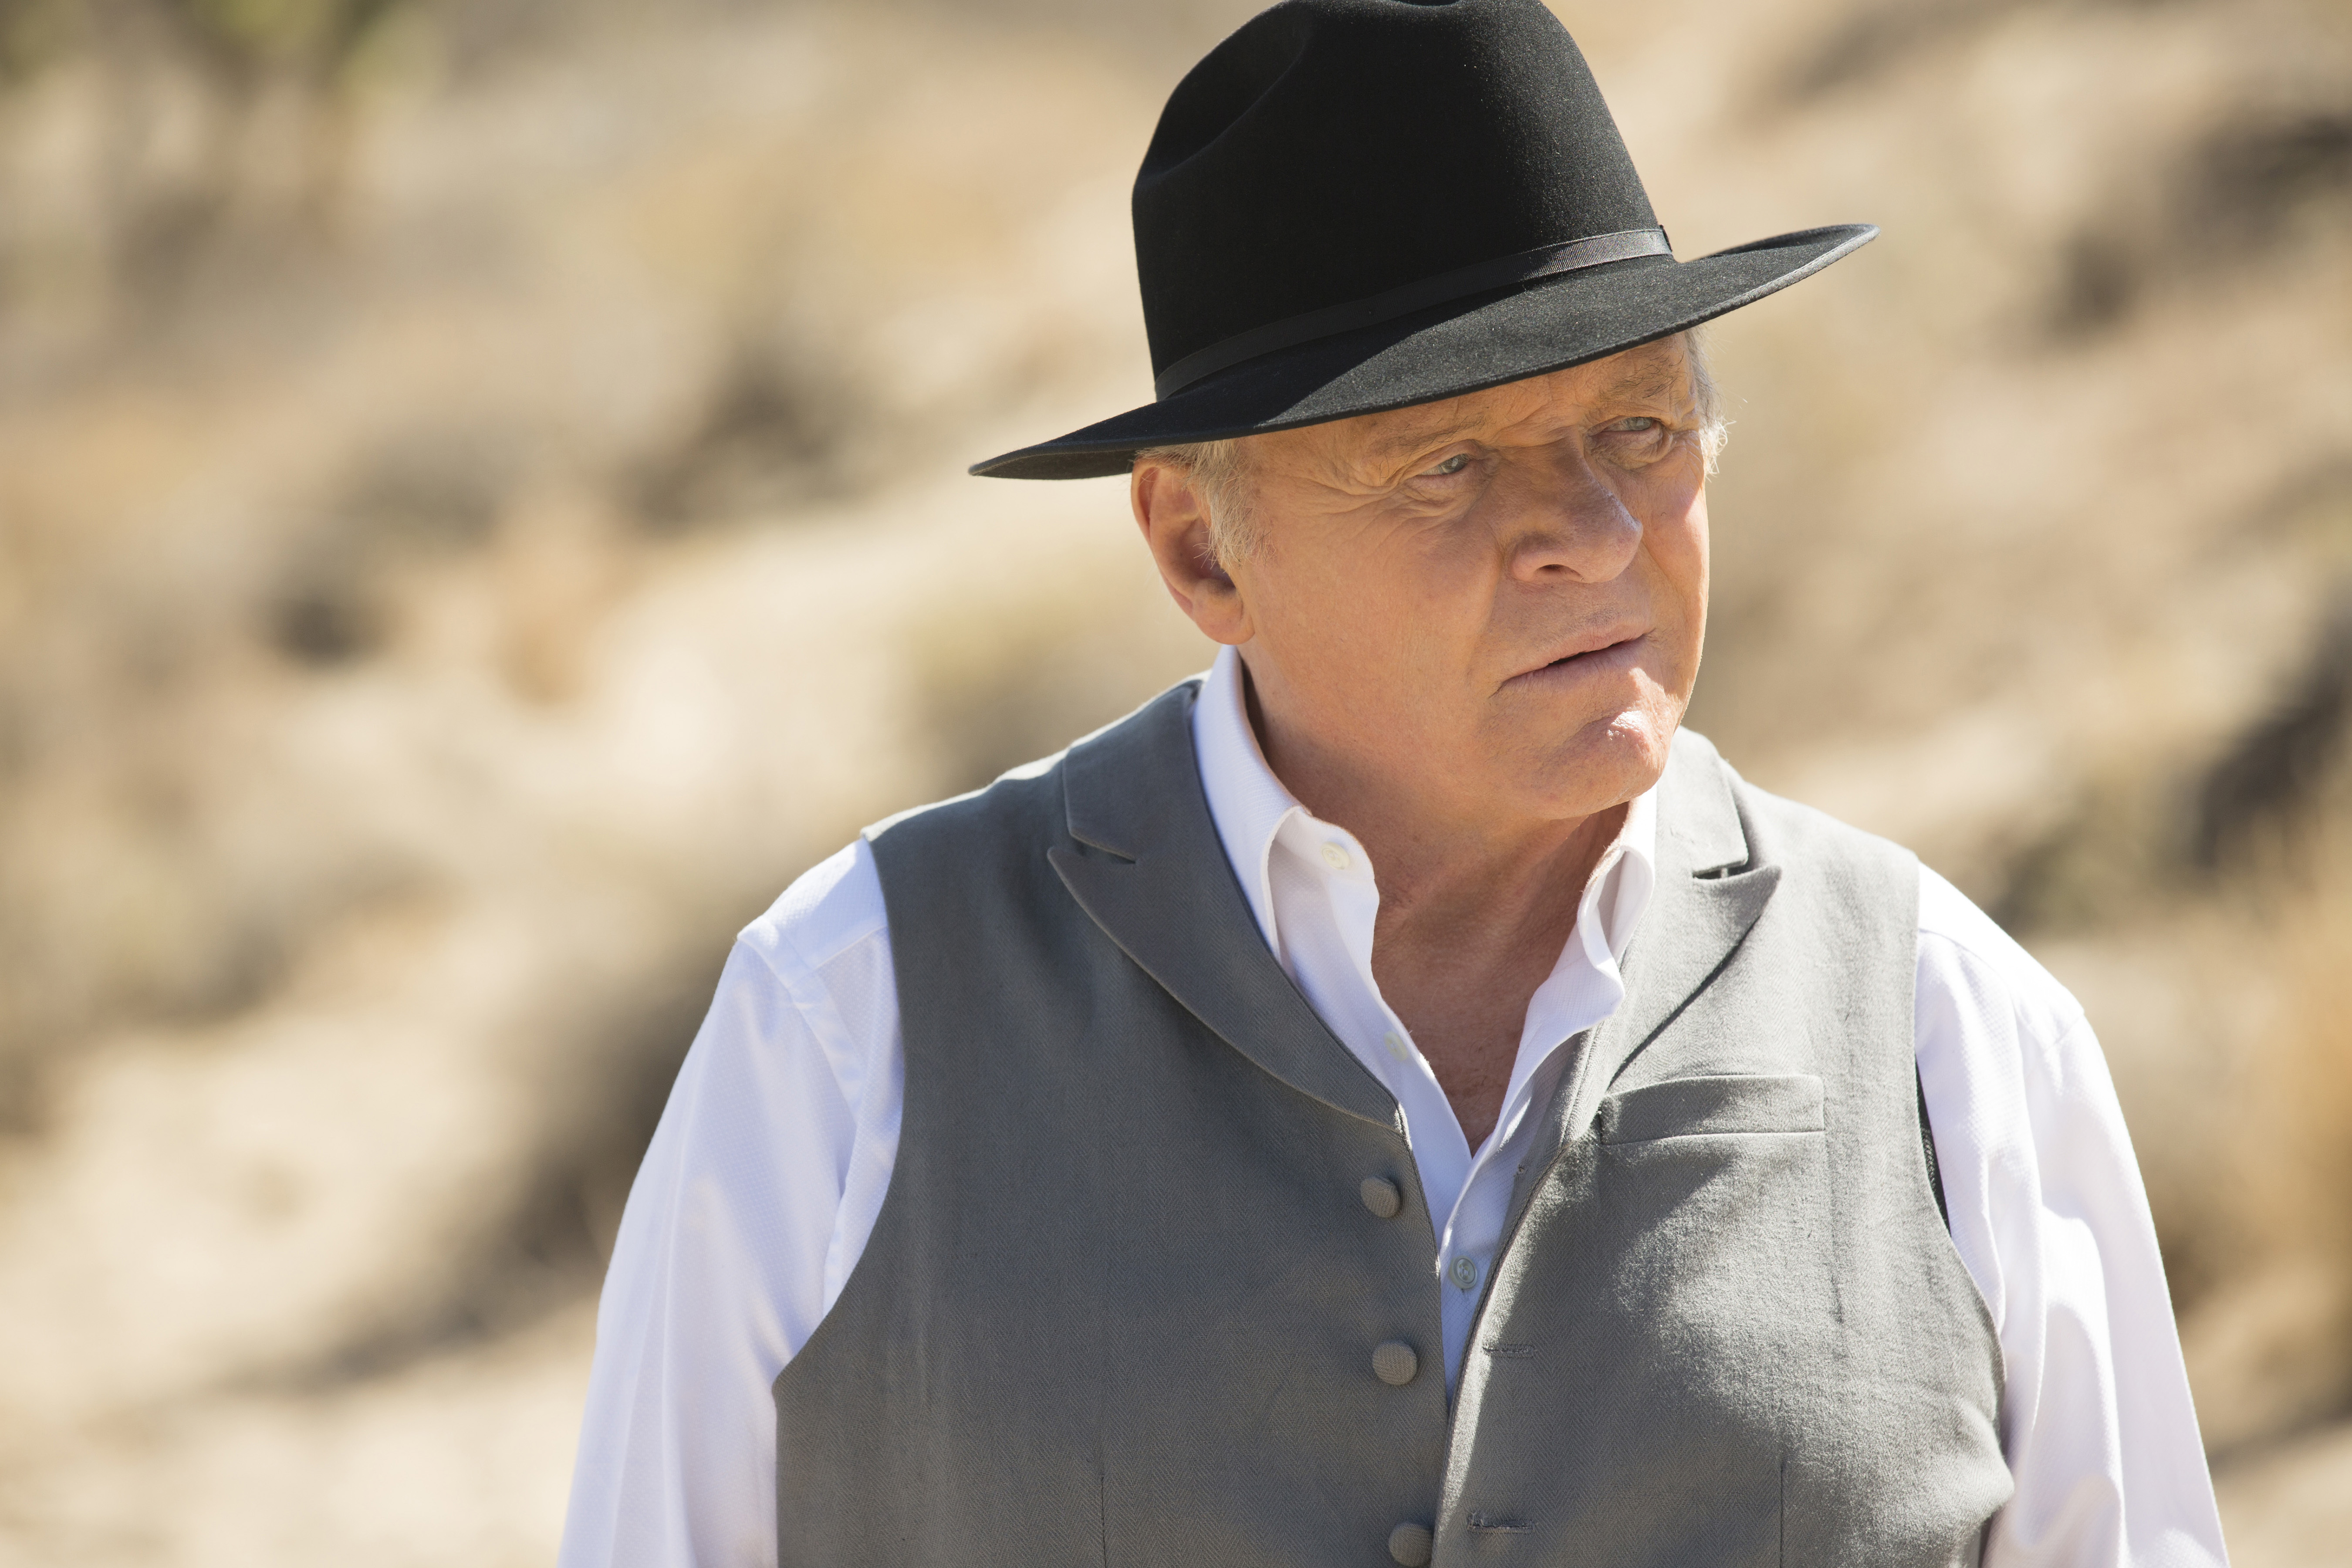 Anthony Hopkins as Doctor Robert Ford.